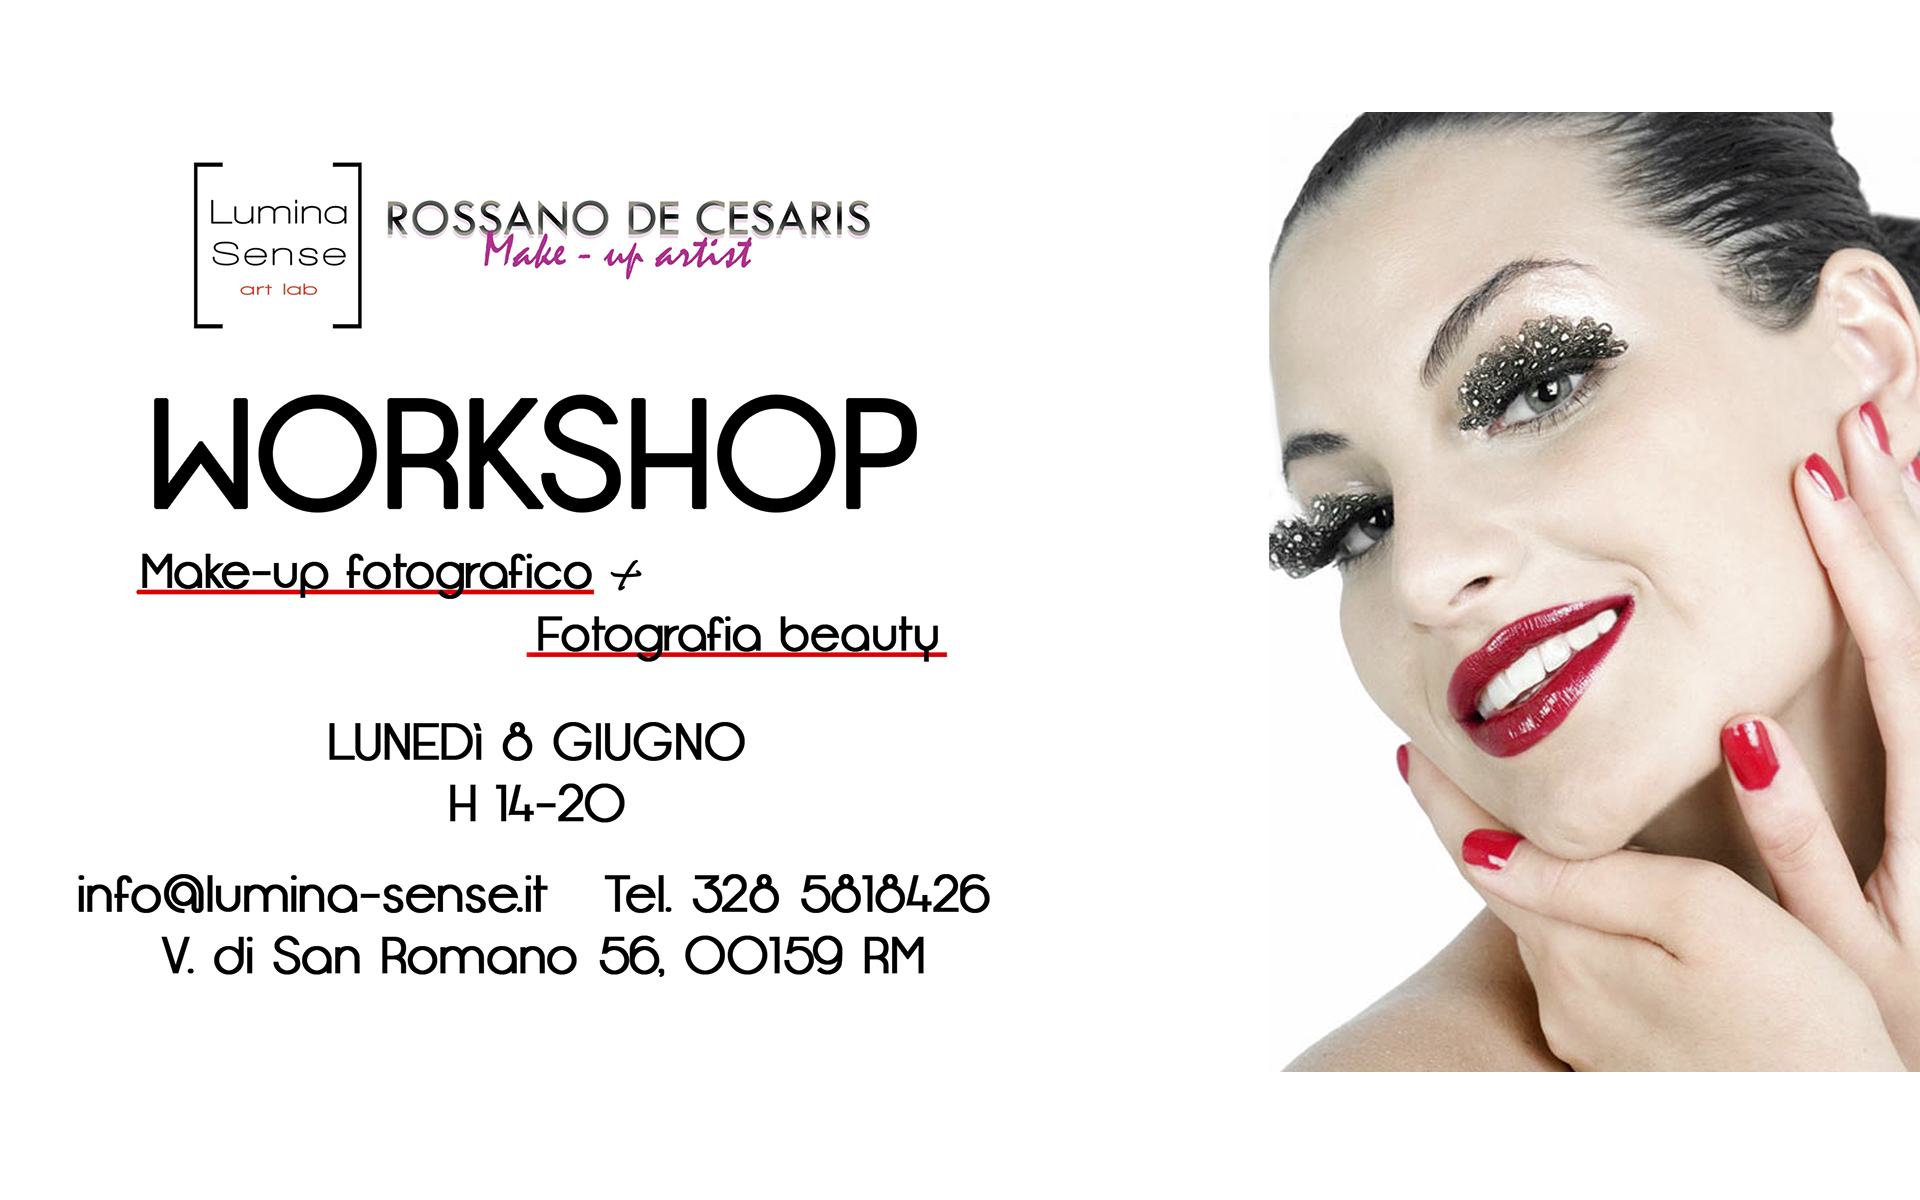 workshop fotografico make-up